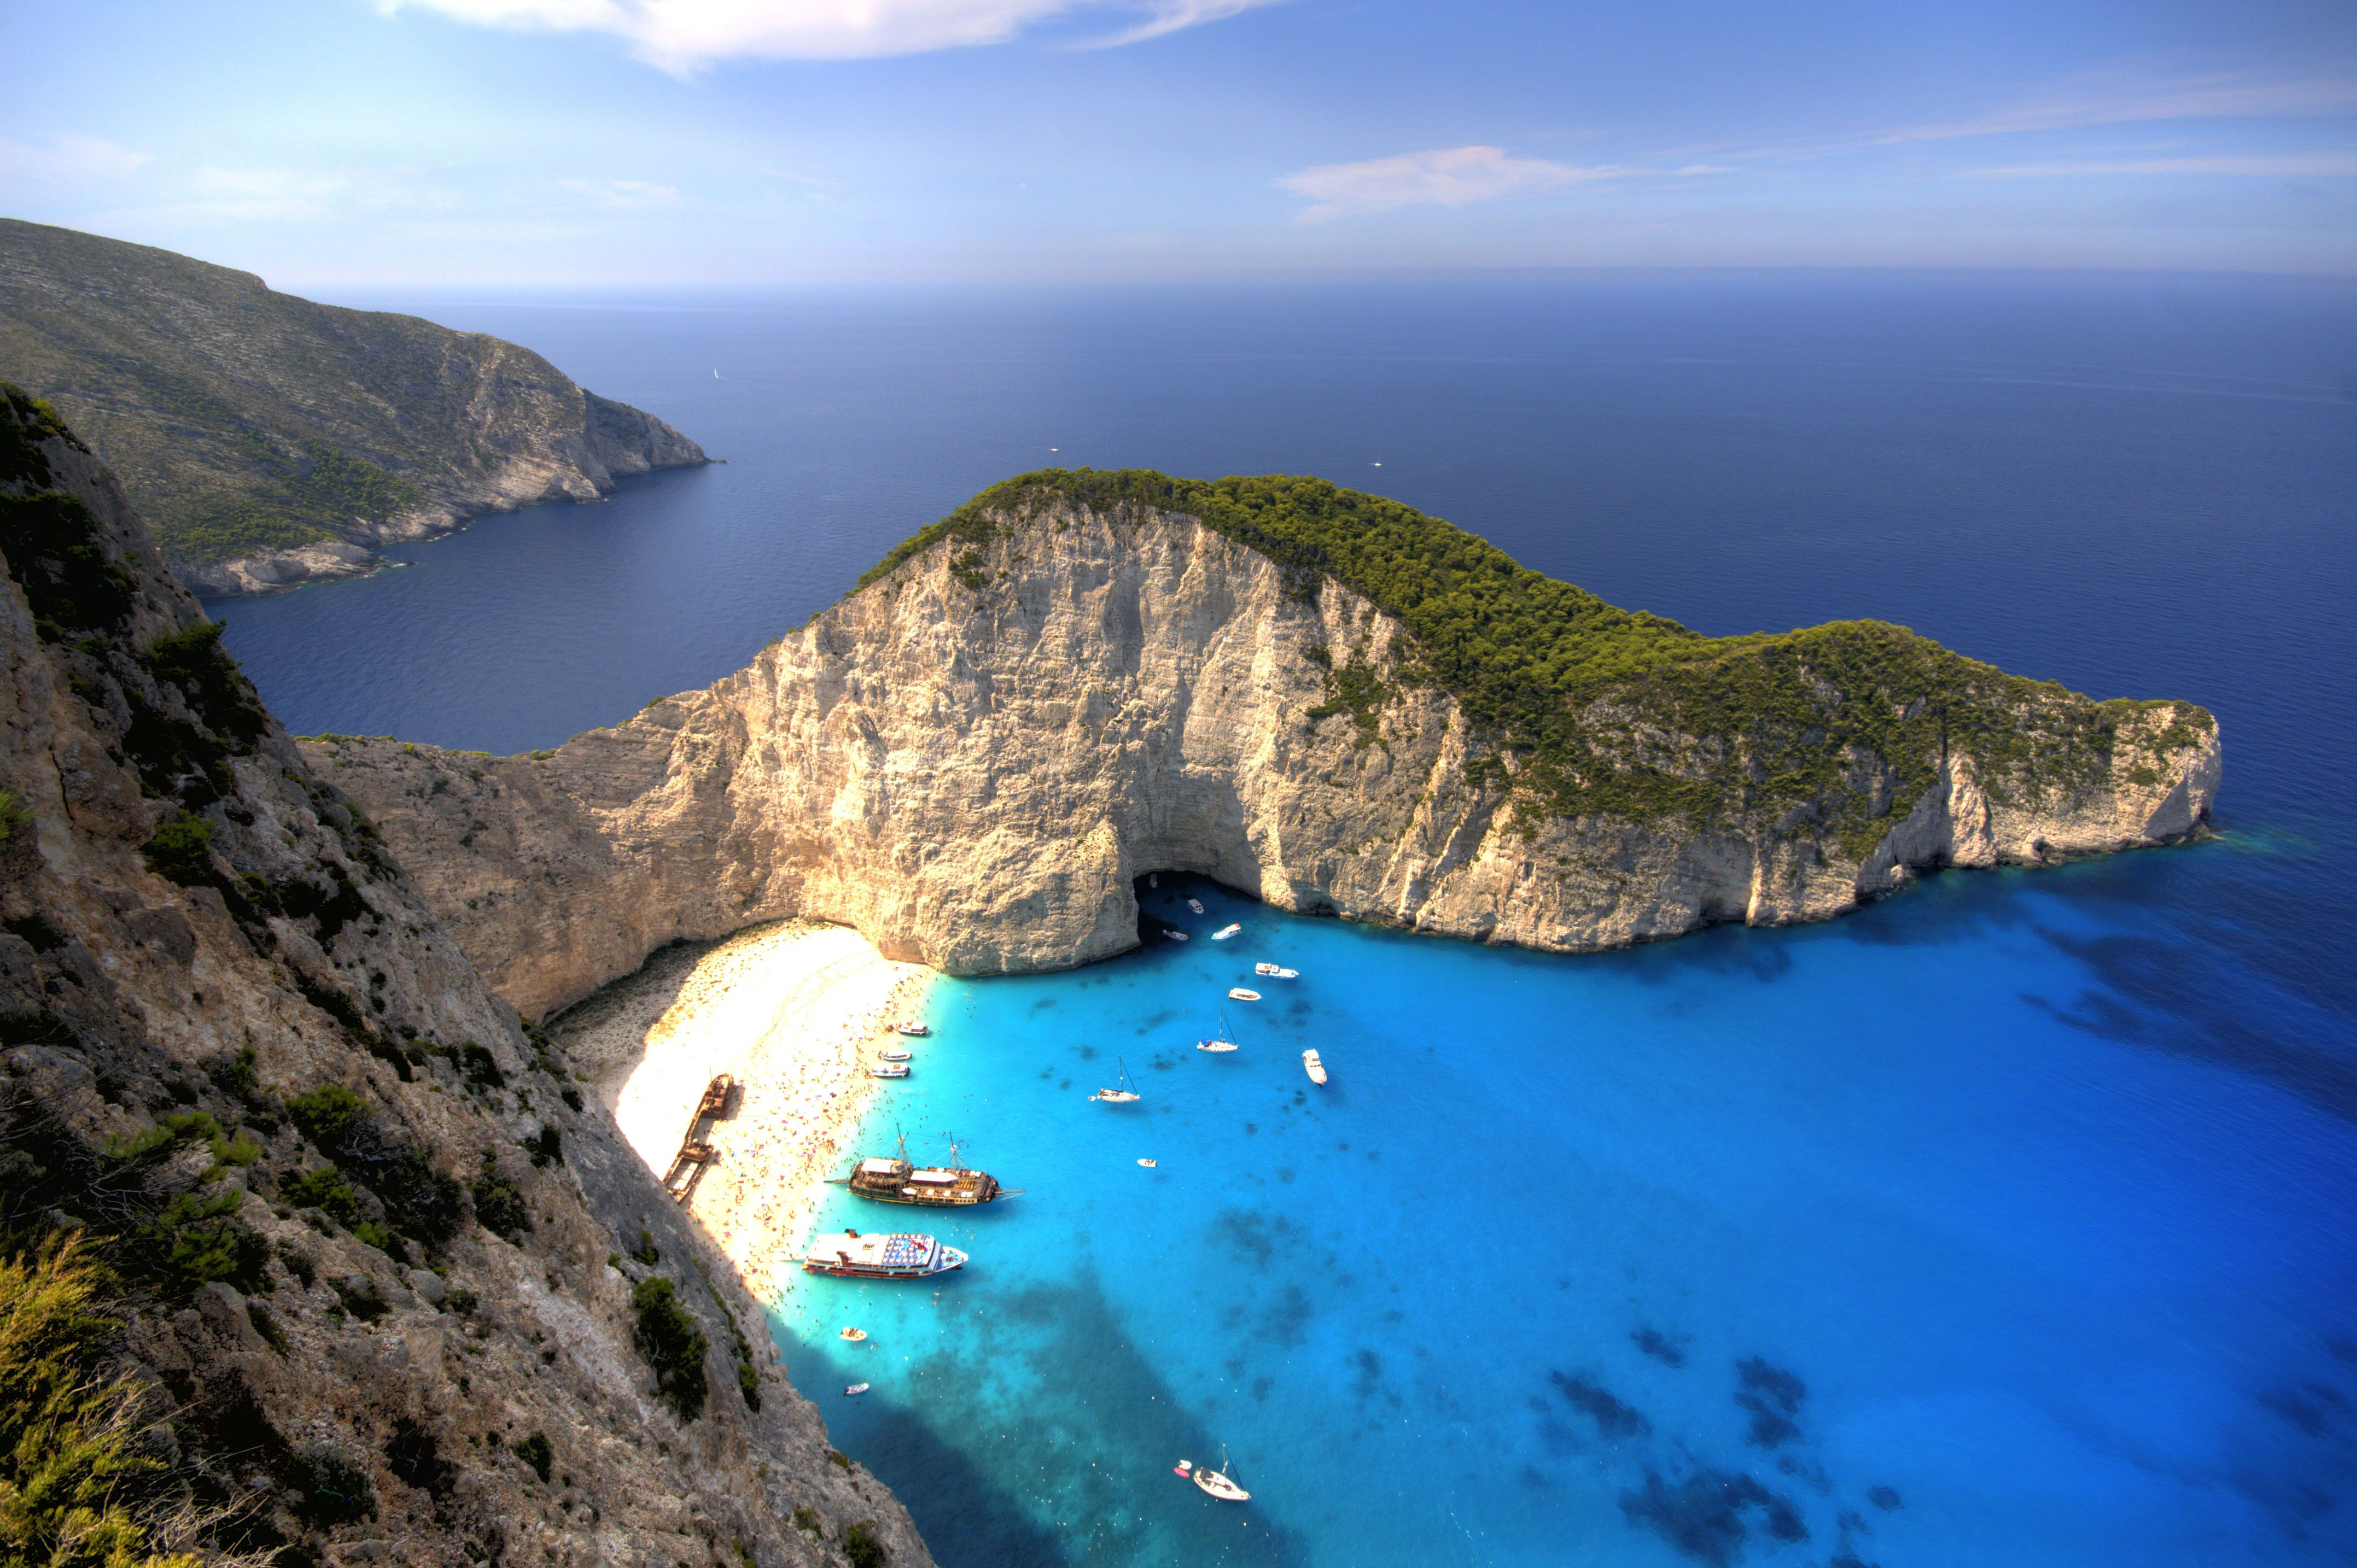 Navagio Beach (Shipwreck Beach). Here I come!